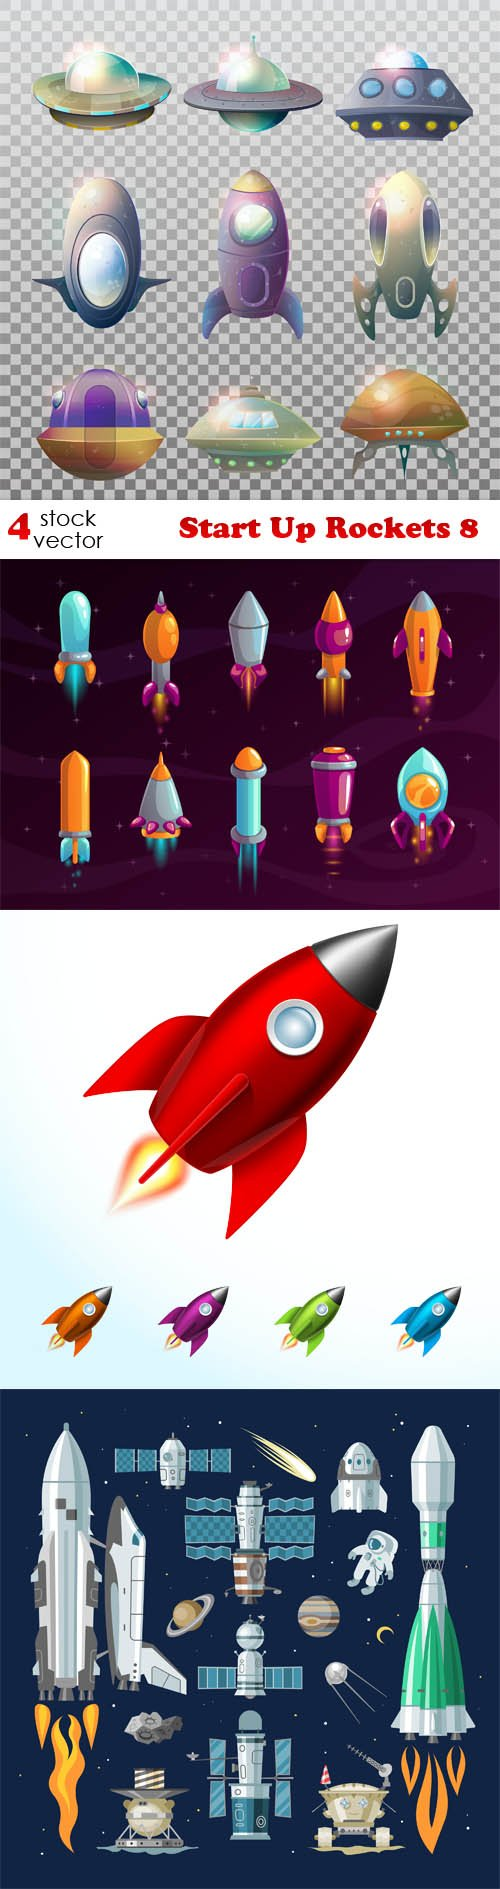 Vectors - Start Up Rockets 8